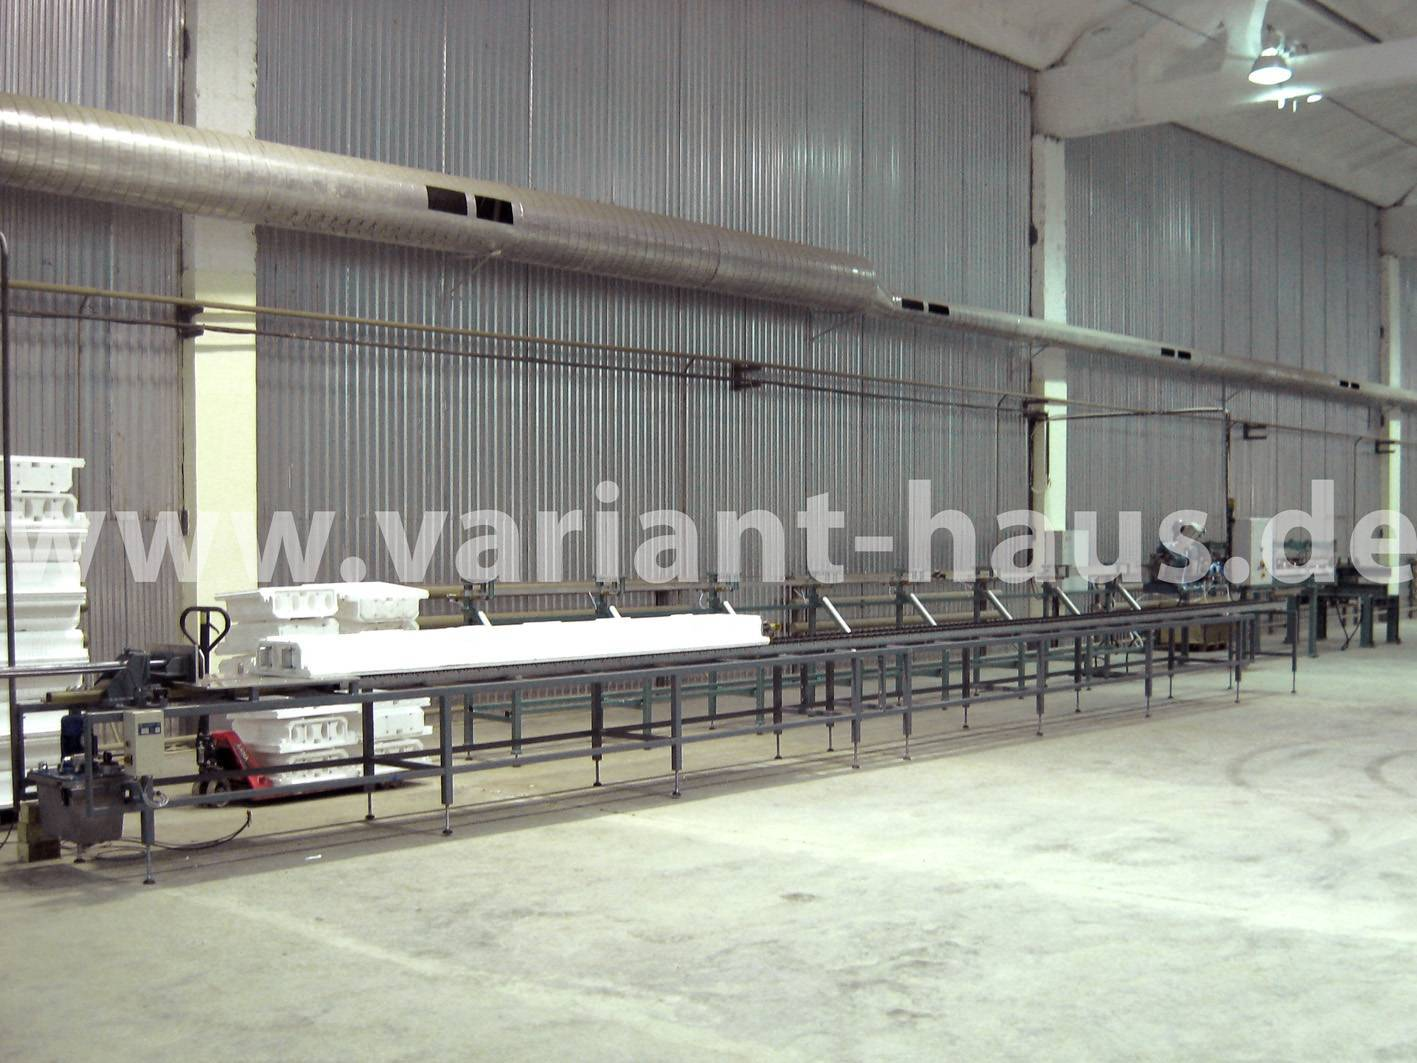 Factory for Suspended Floor Slabs, ceilings, cinder blocks, hollow concrete block insulation